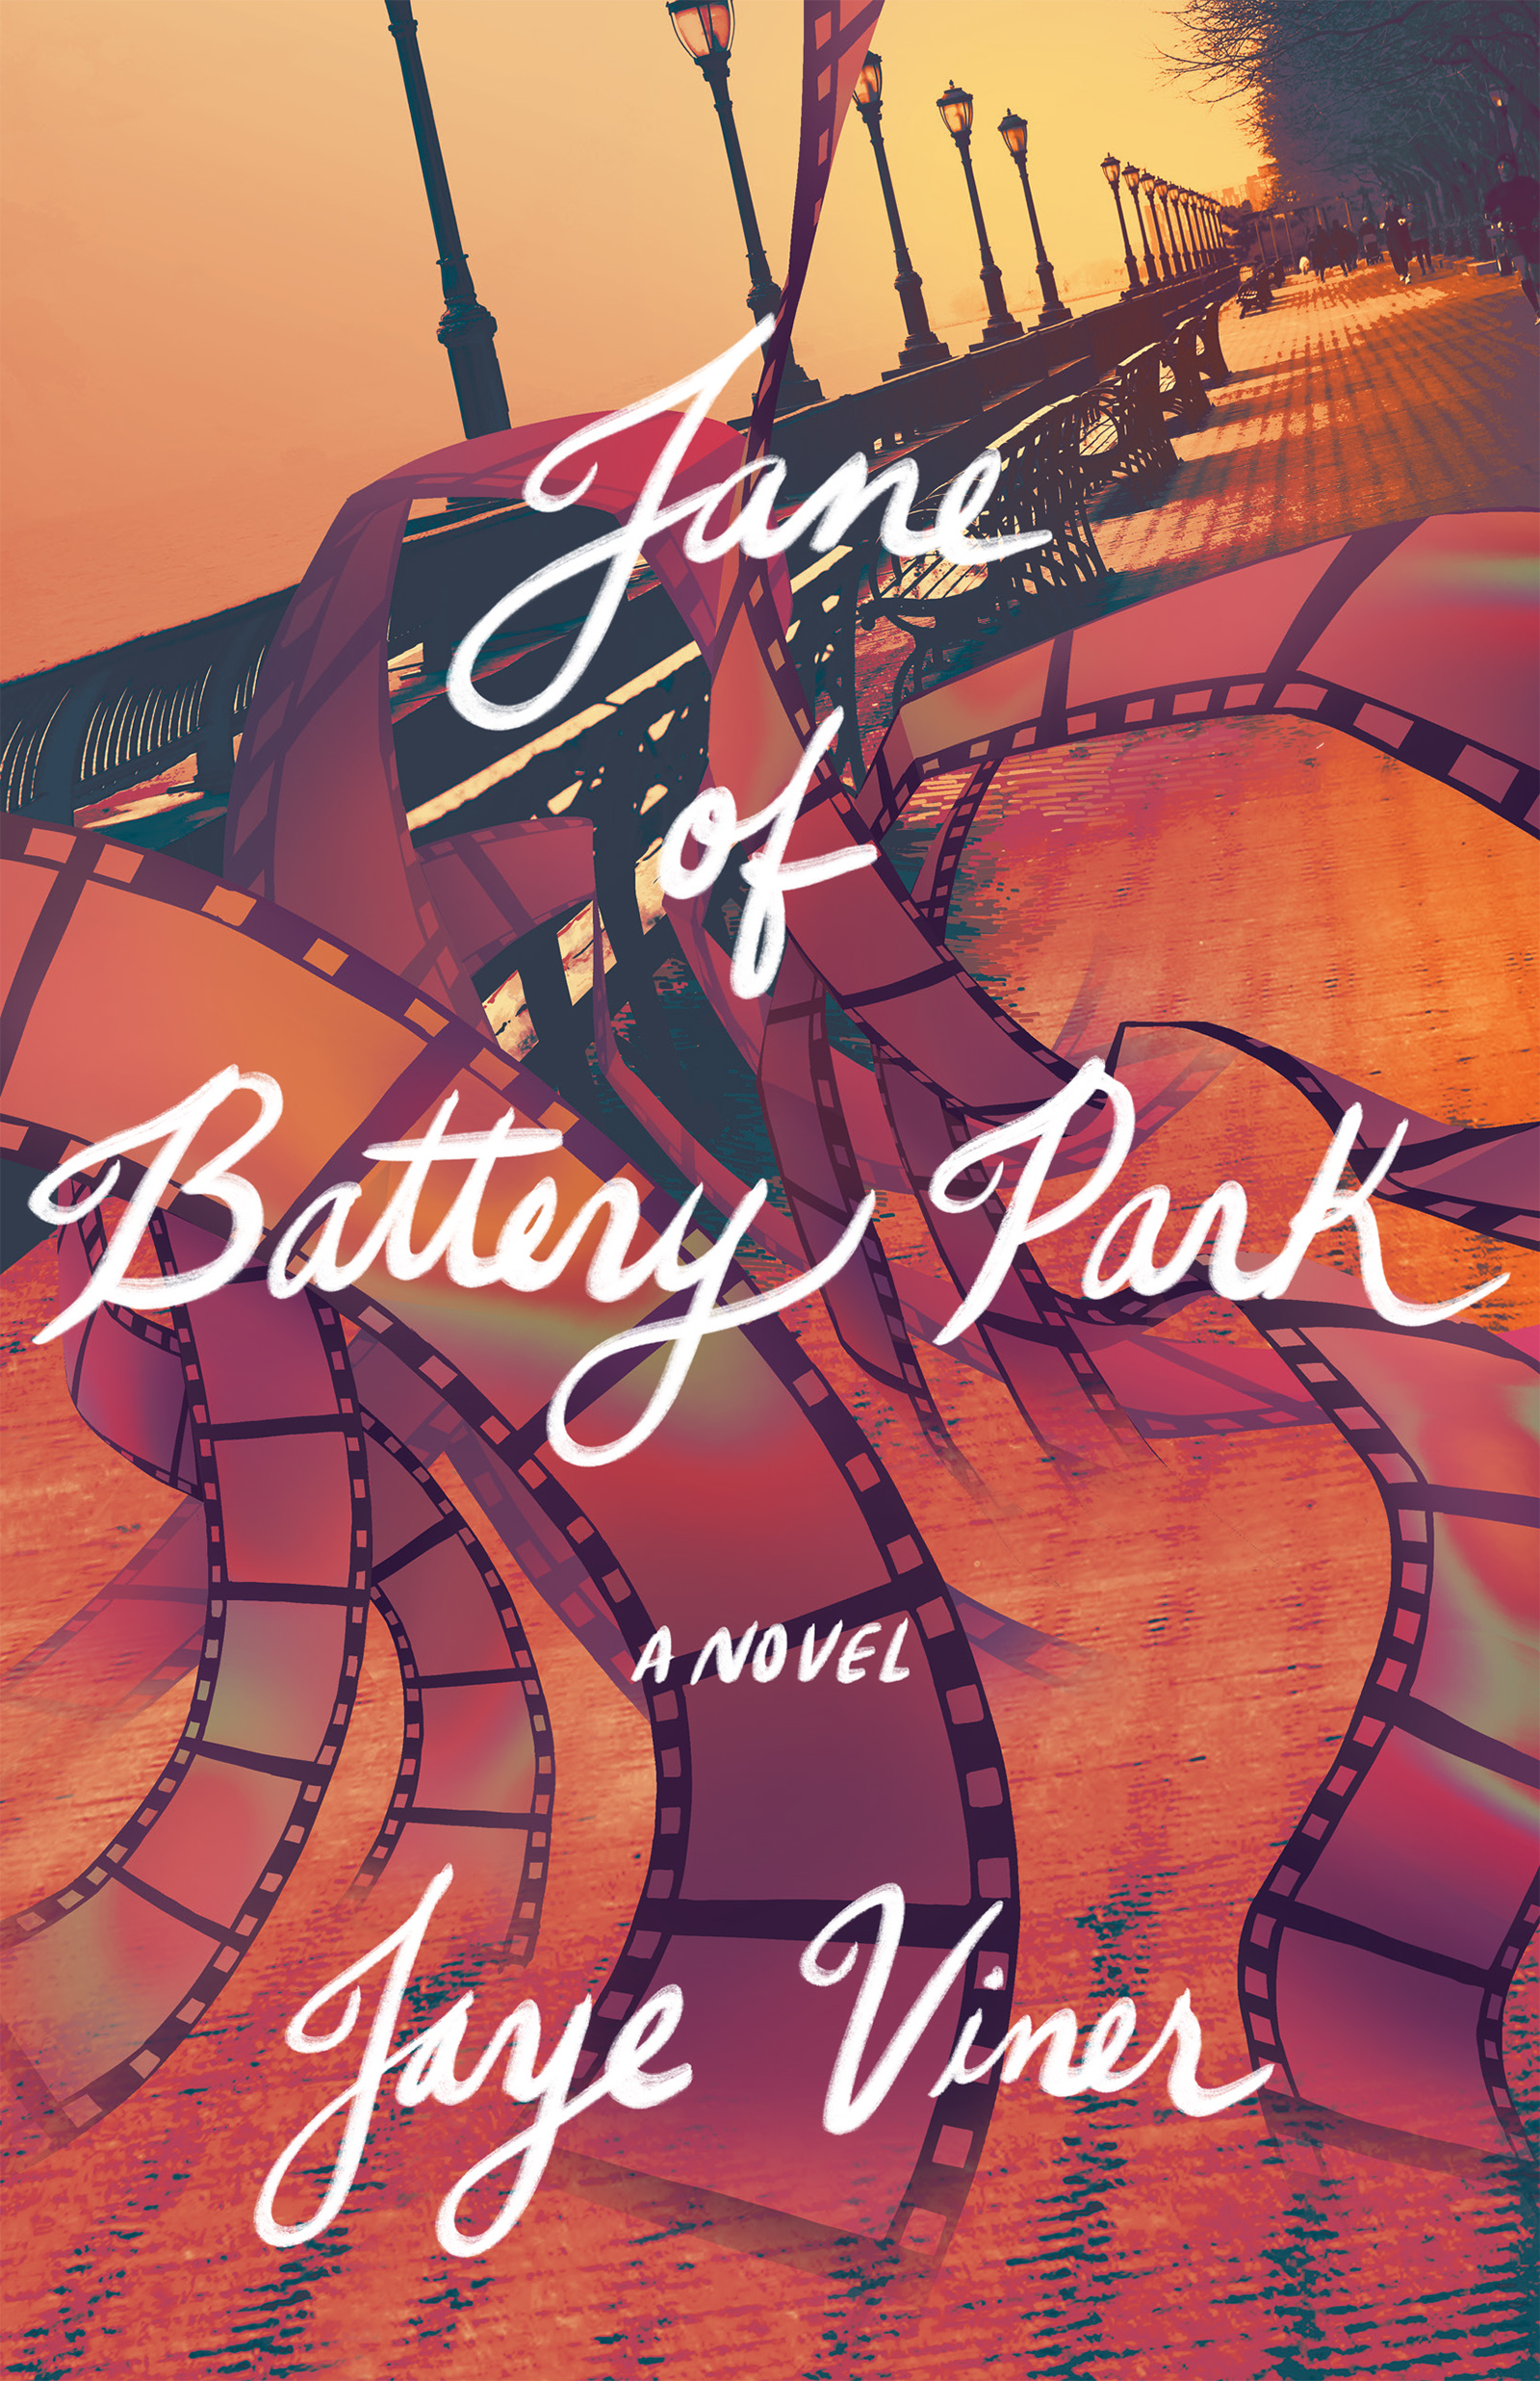 A side walk with black lamp posts and a strip of film negatives flying around with script that reads Jane Battery Park a novel by Jaye Viner.